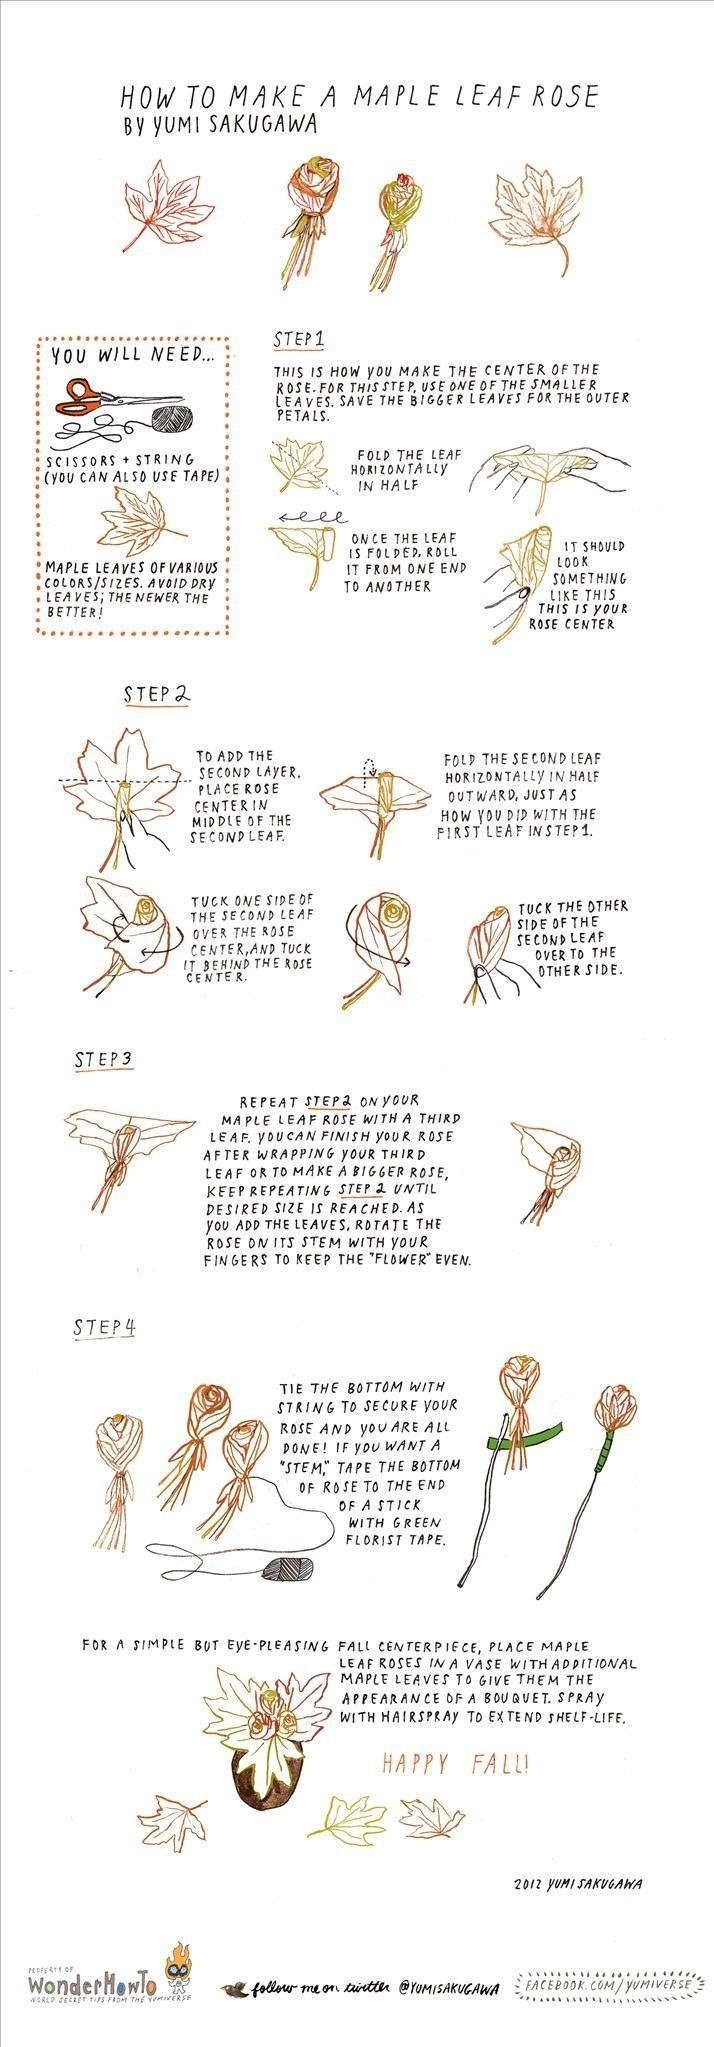 How to Make a Maple Leaf Rose